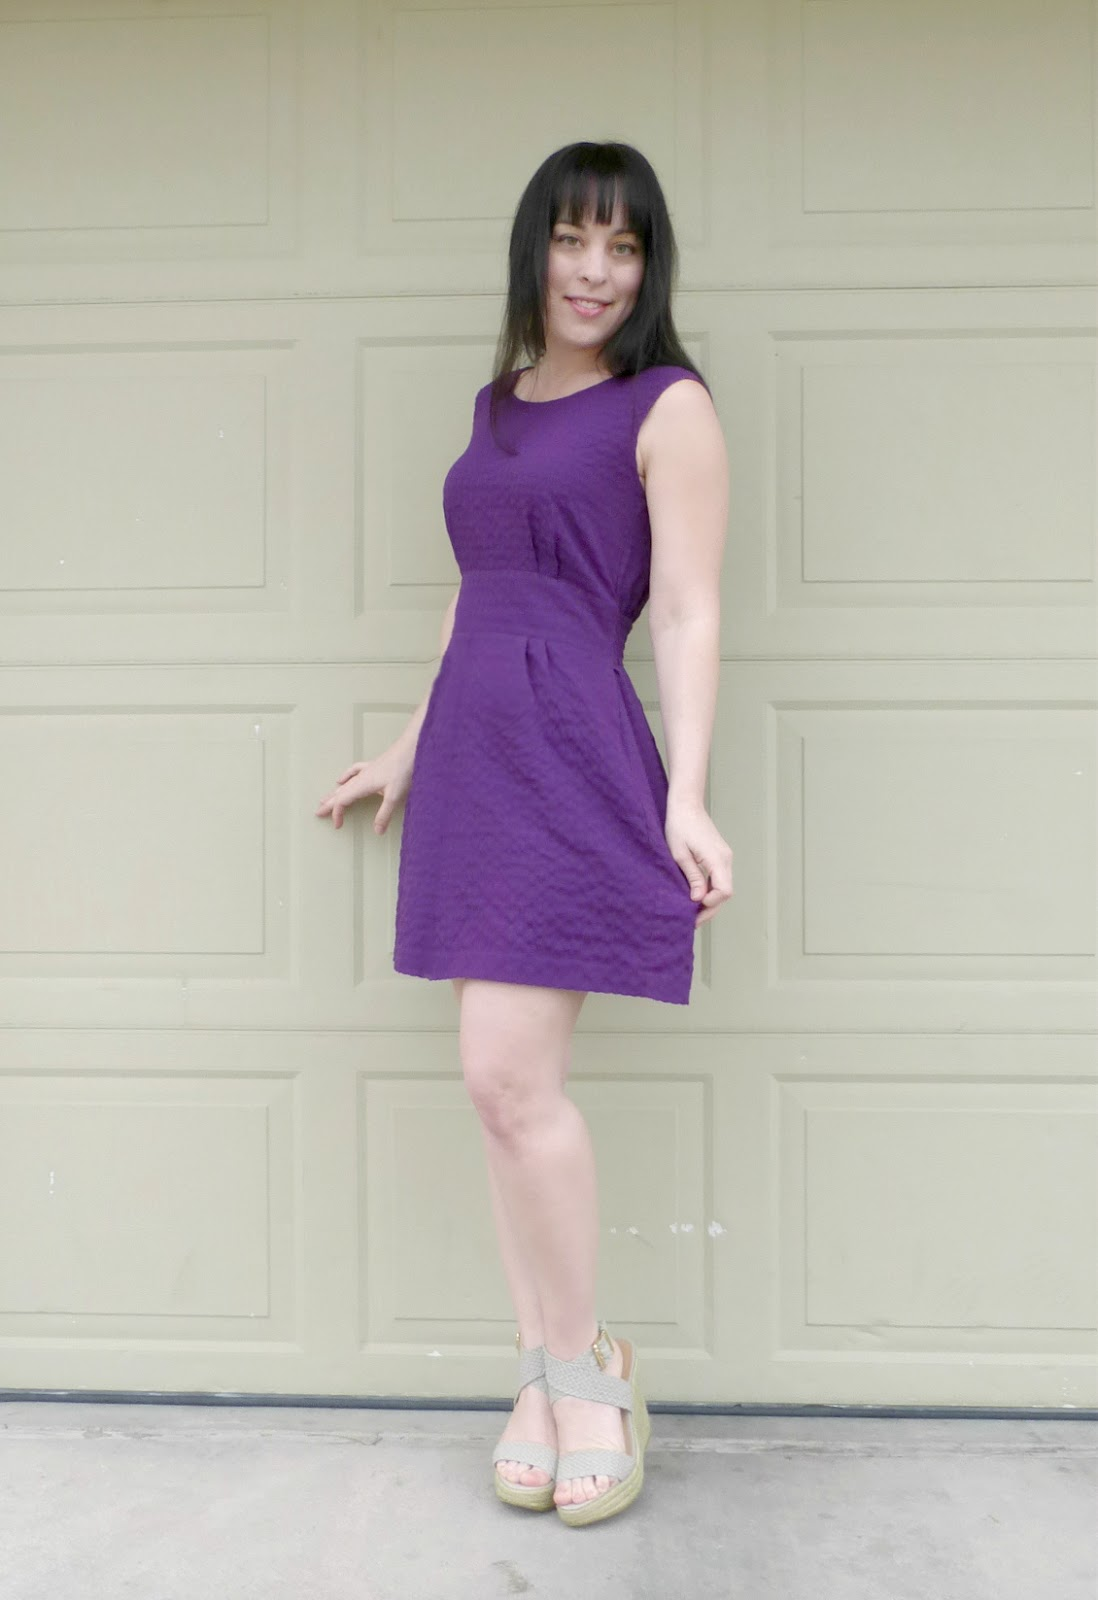 romper to purple dress refashion